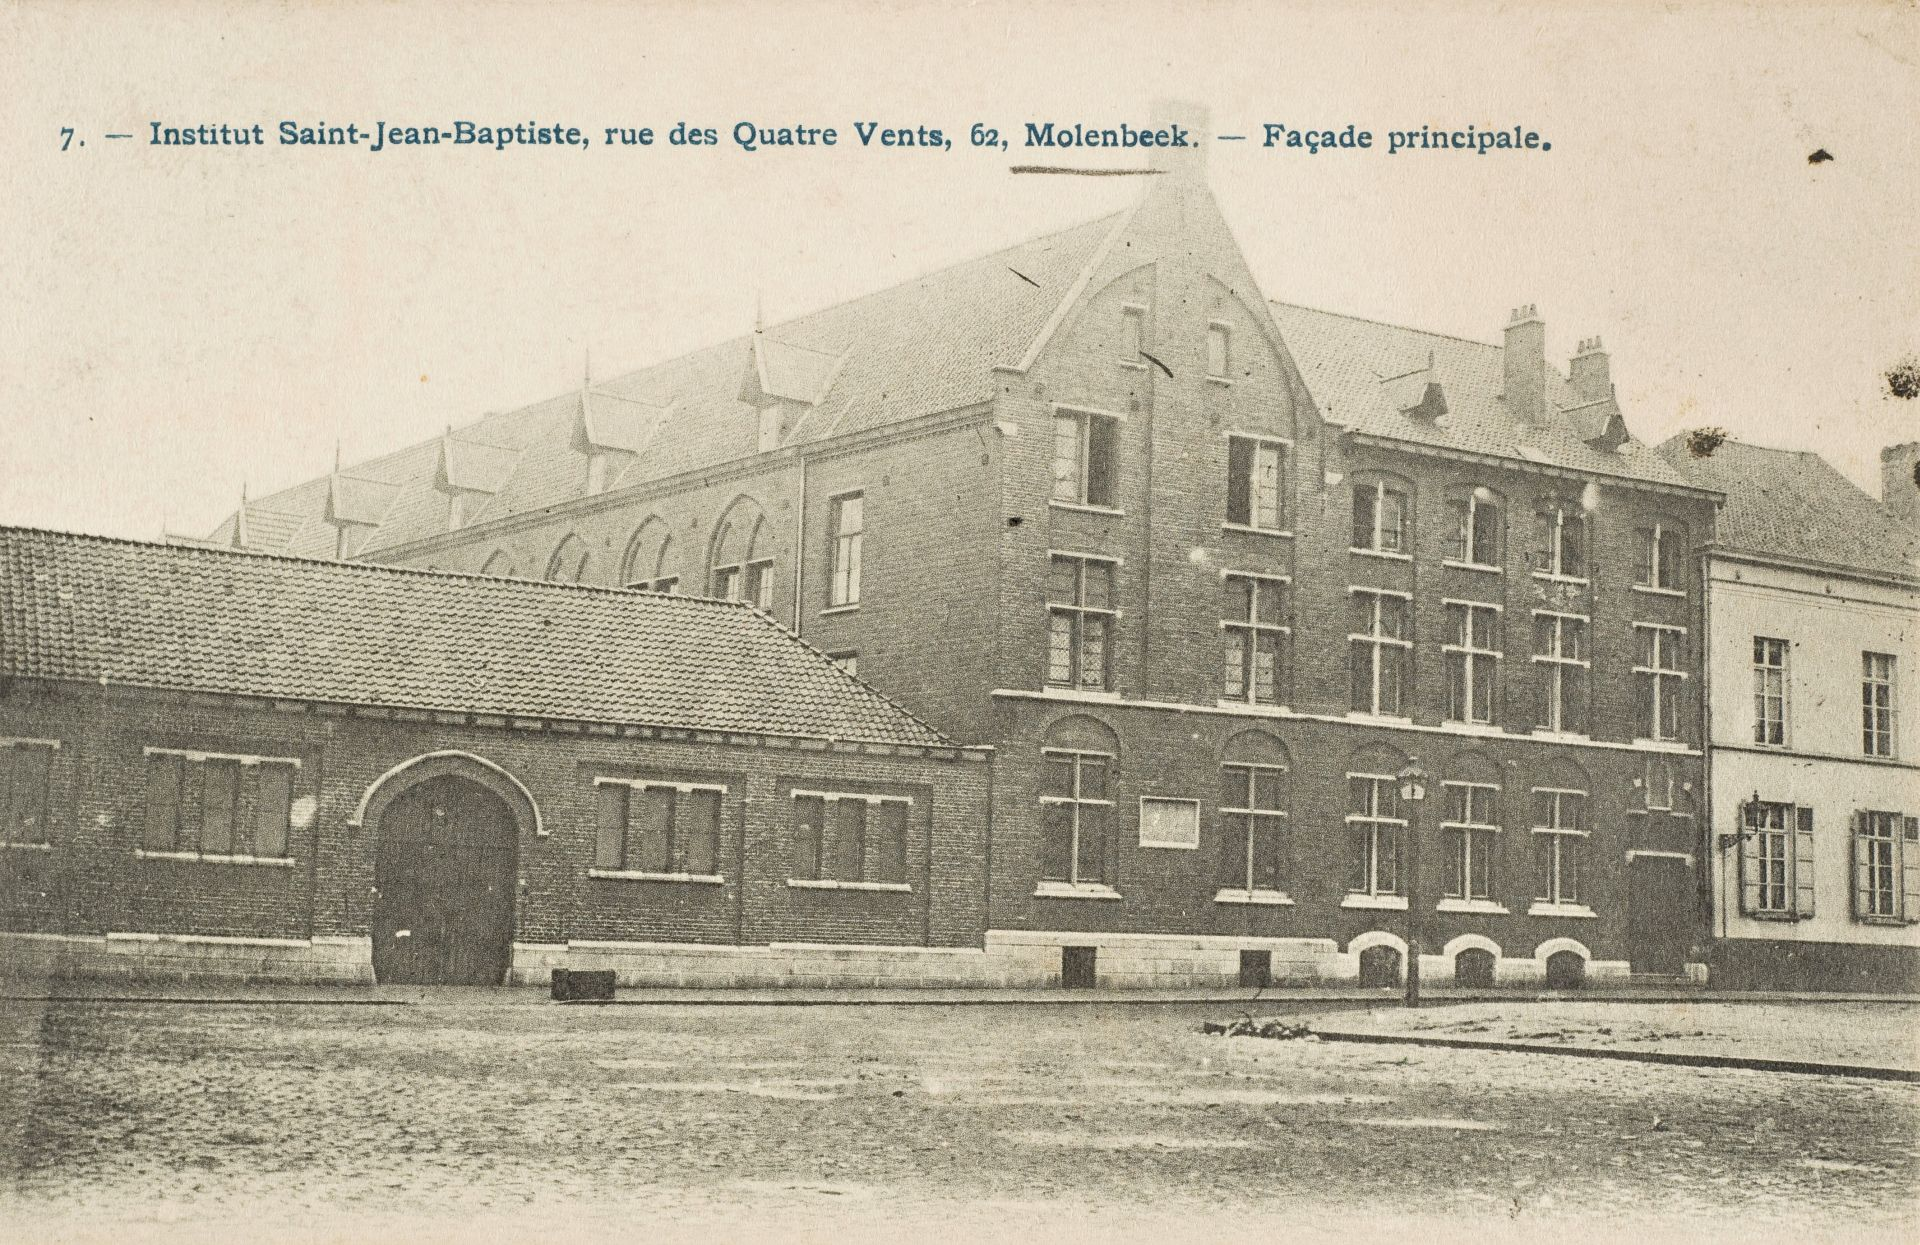 Rue des Quatre-Vents 62, Institut Saint-Jean-Baptiste (Collection Dexia Banque-ARB_RBC)